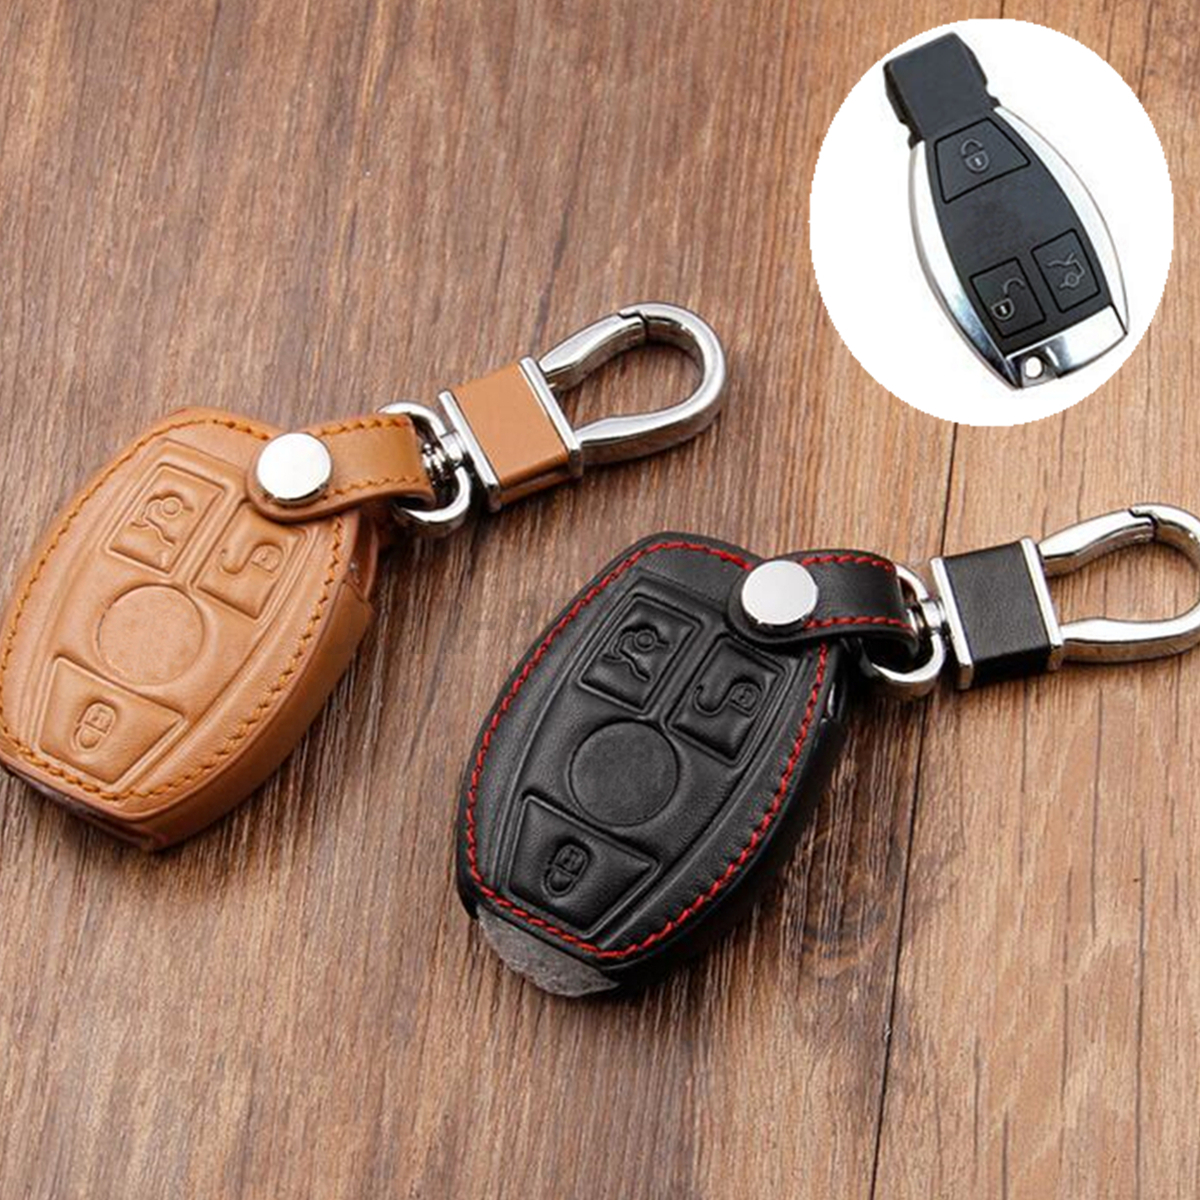 Pu leather key cover case holder for mercedes benz remote for Mercedes benz key cover